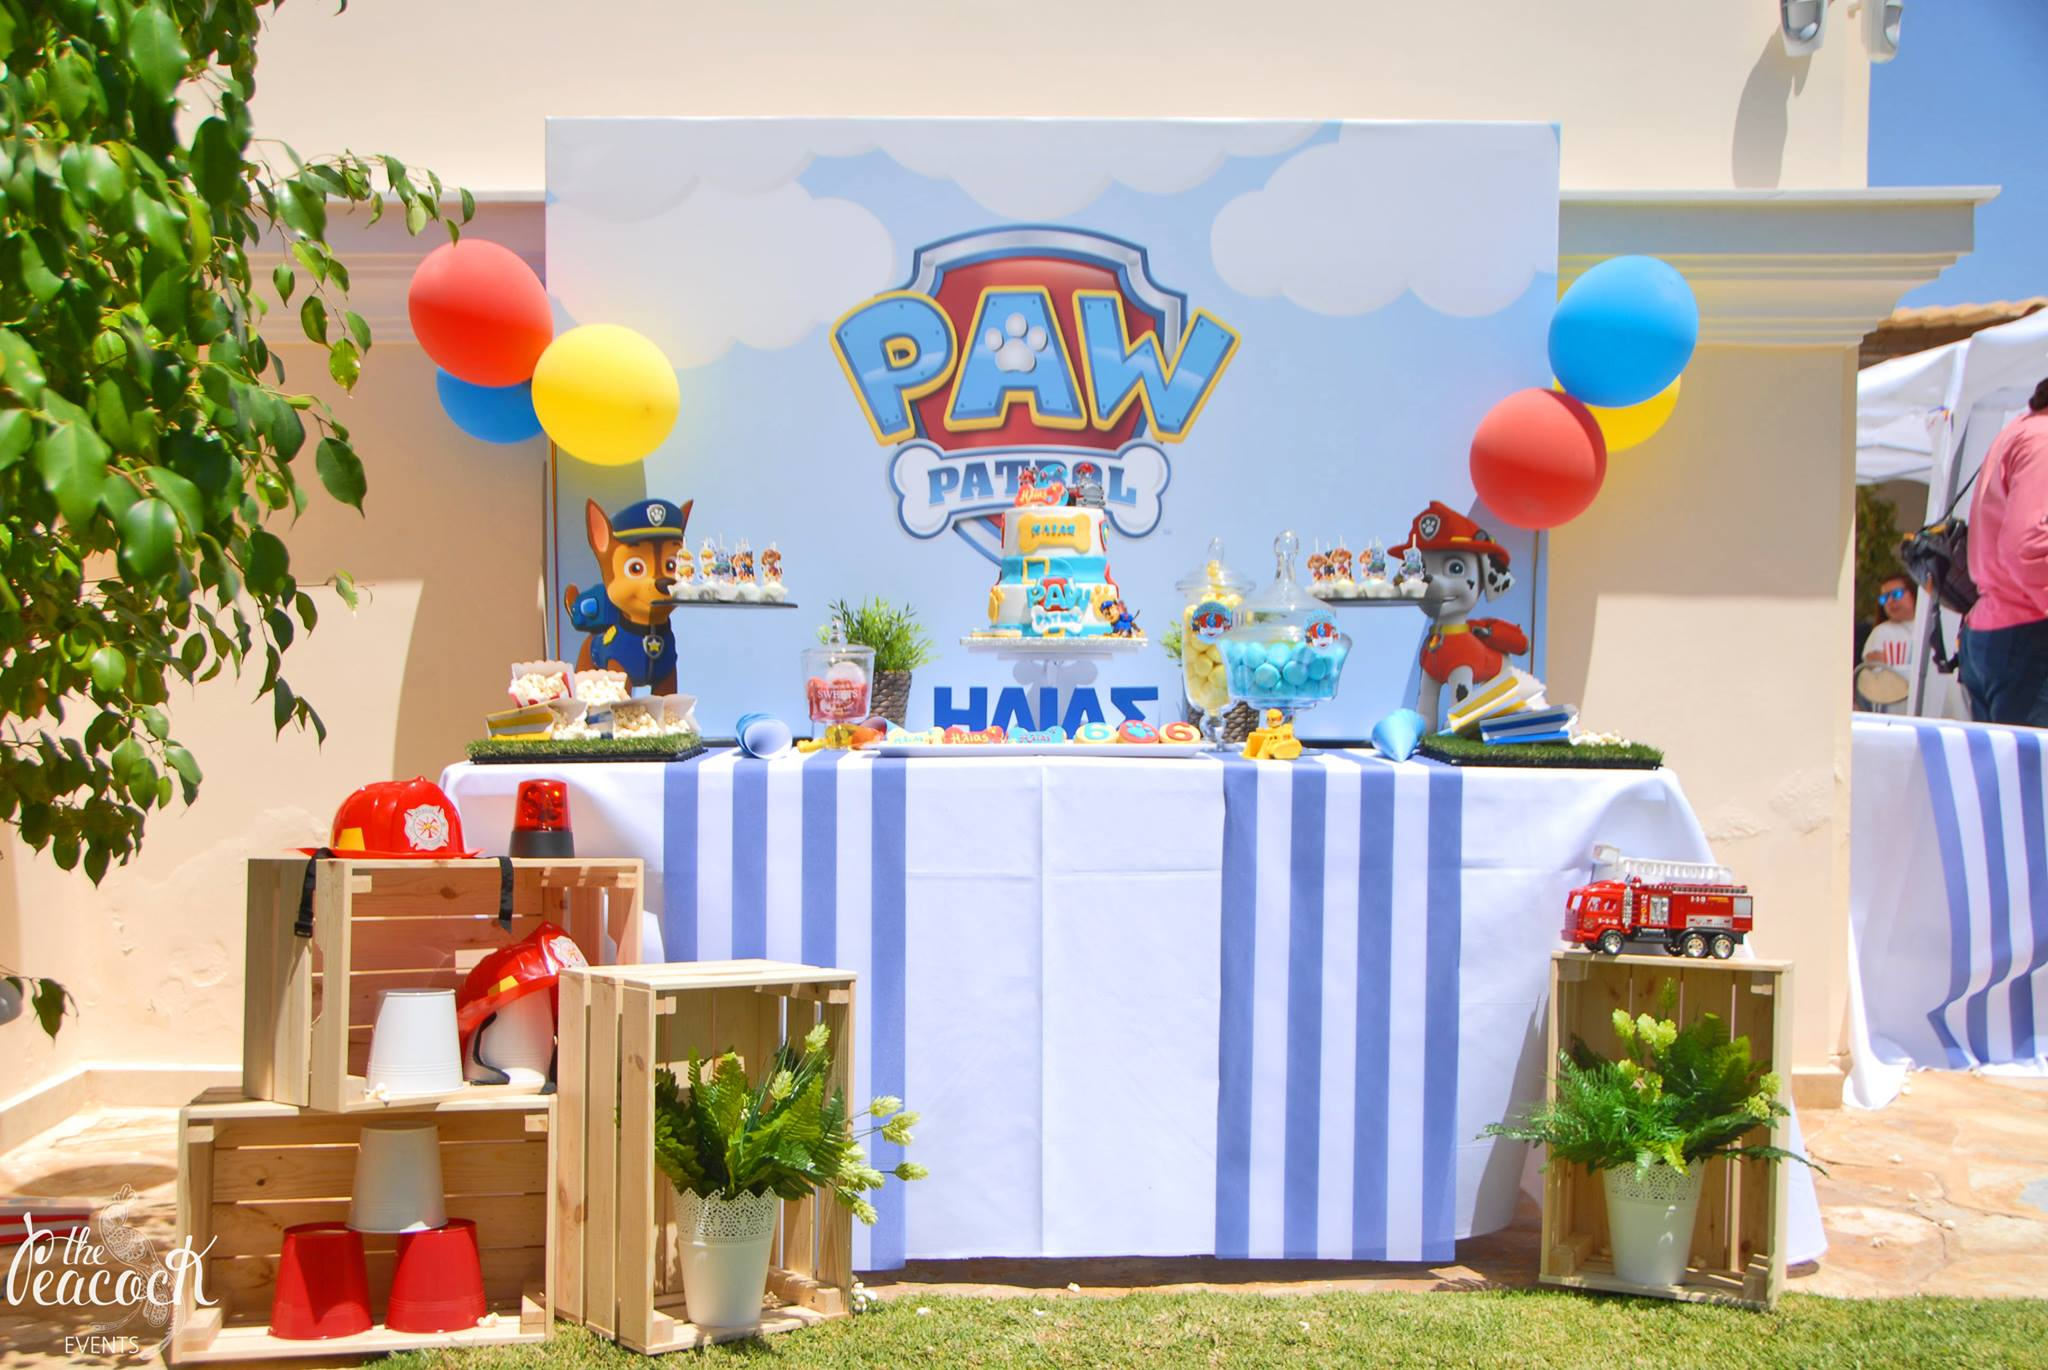 Candy bar Paw Patrol (1,80x2,00m)